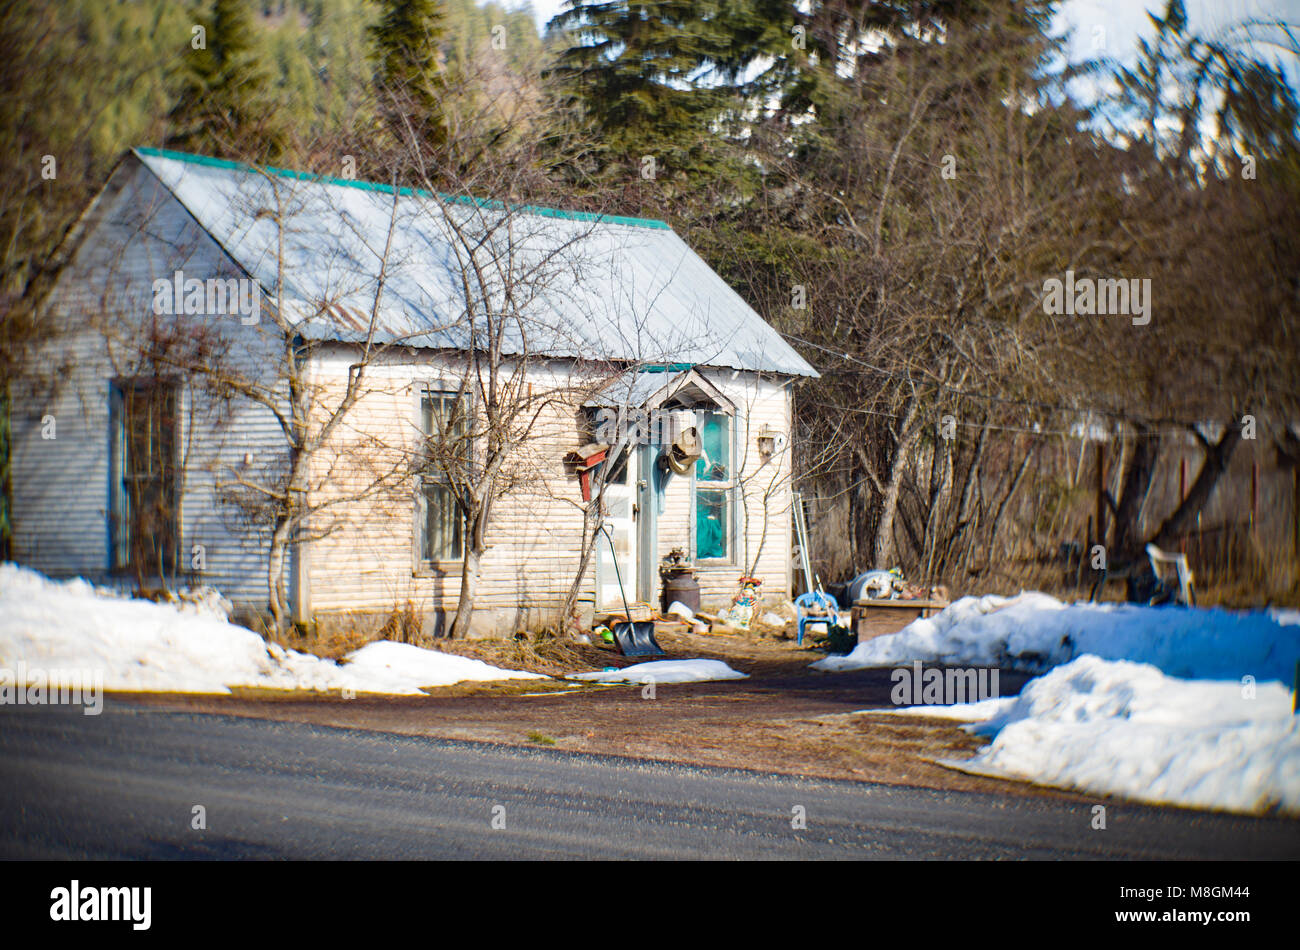 A small white wood frame house, with a messy yard, in the town of Clark Fork, Idaho. - Stock Image